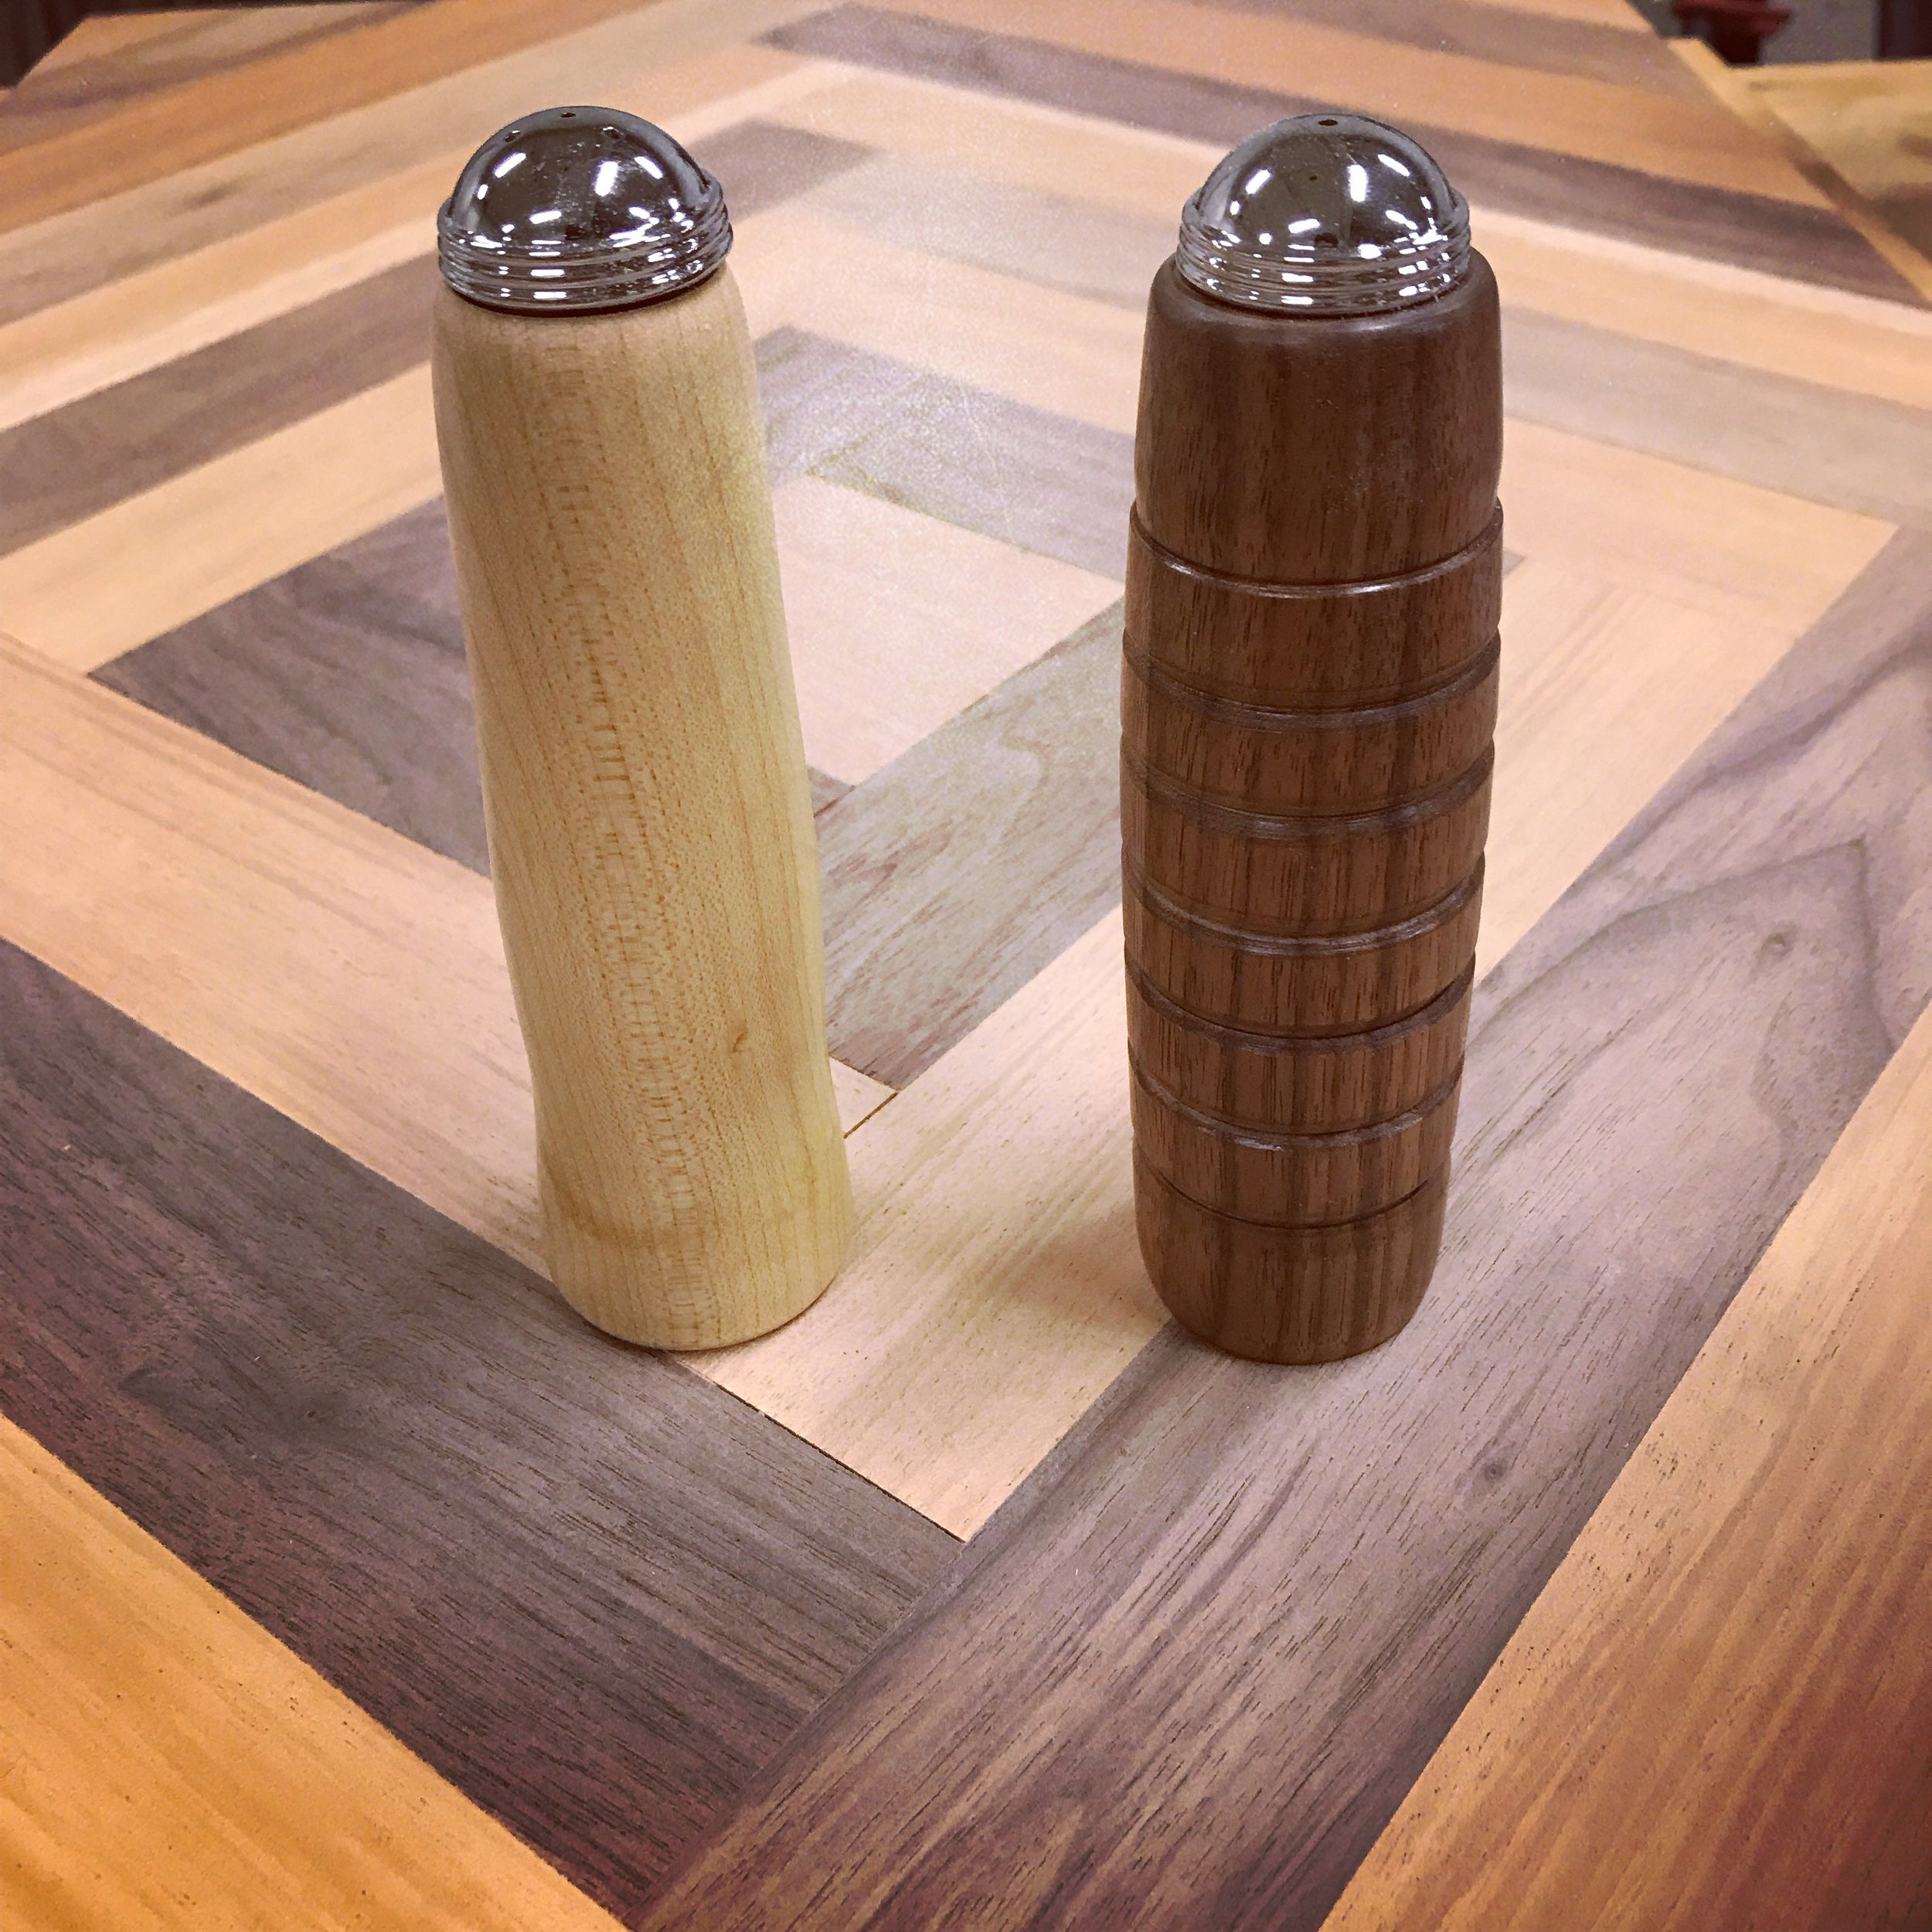 Wood Turned Salt and Pepper Shakers